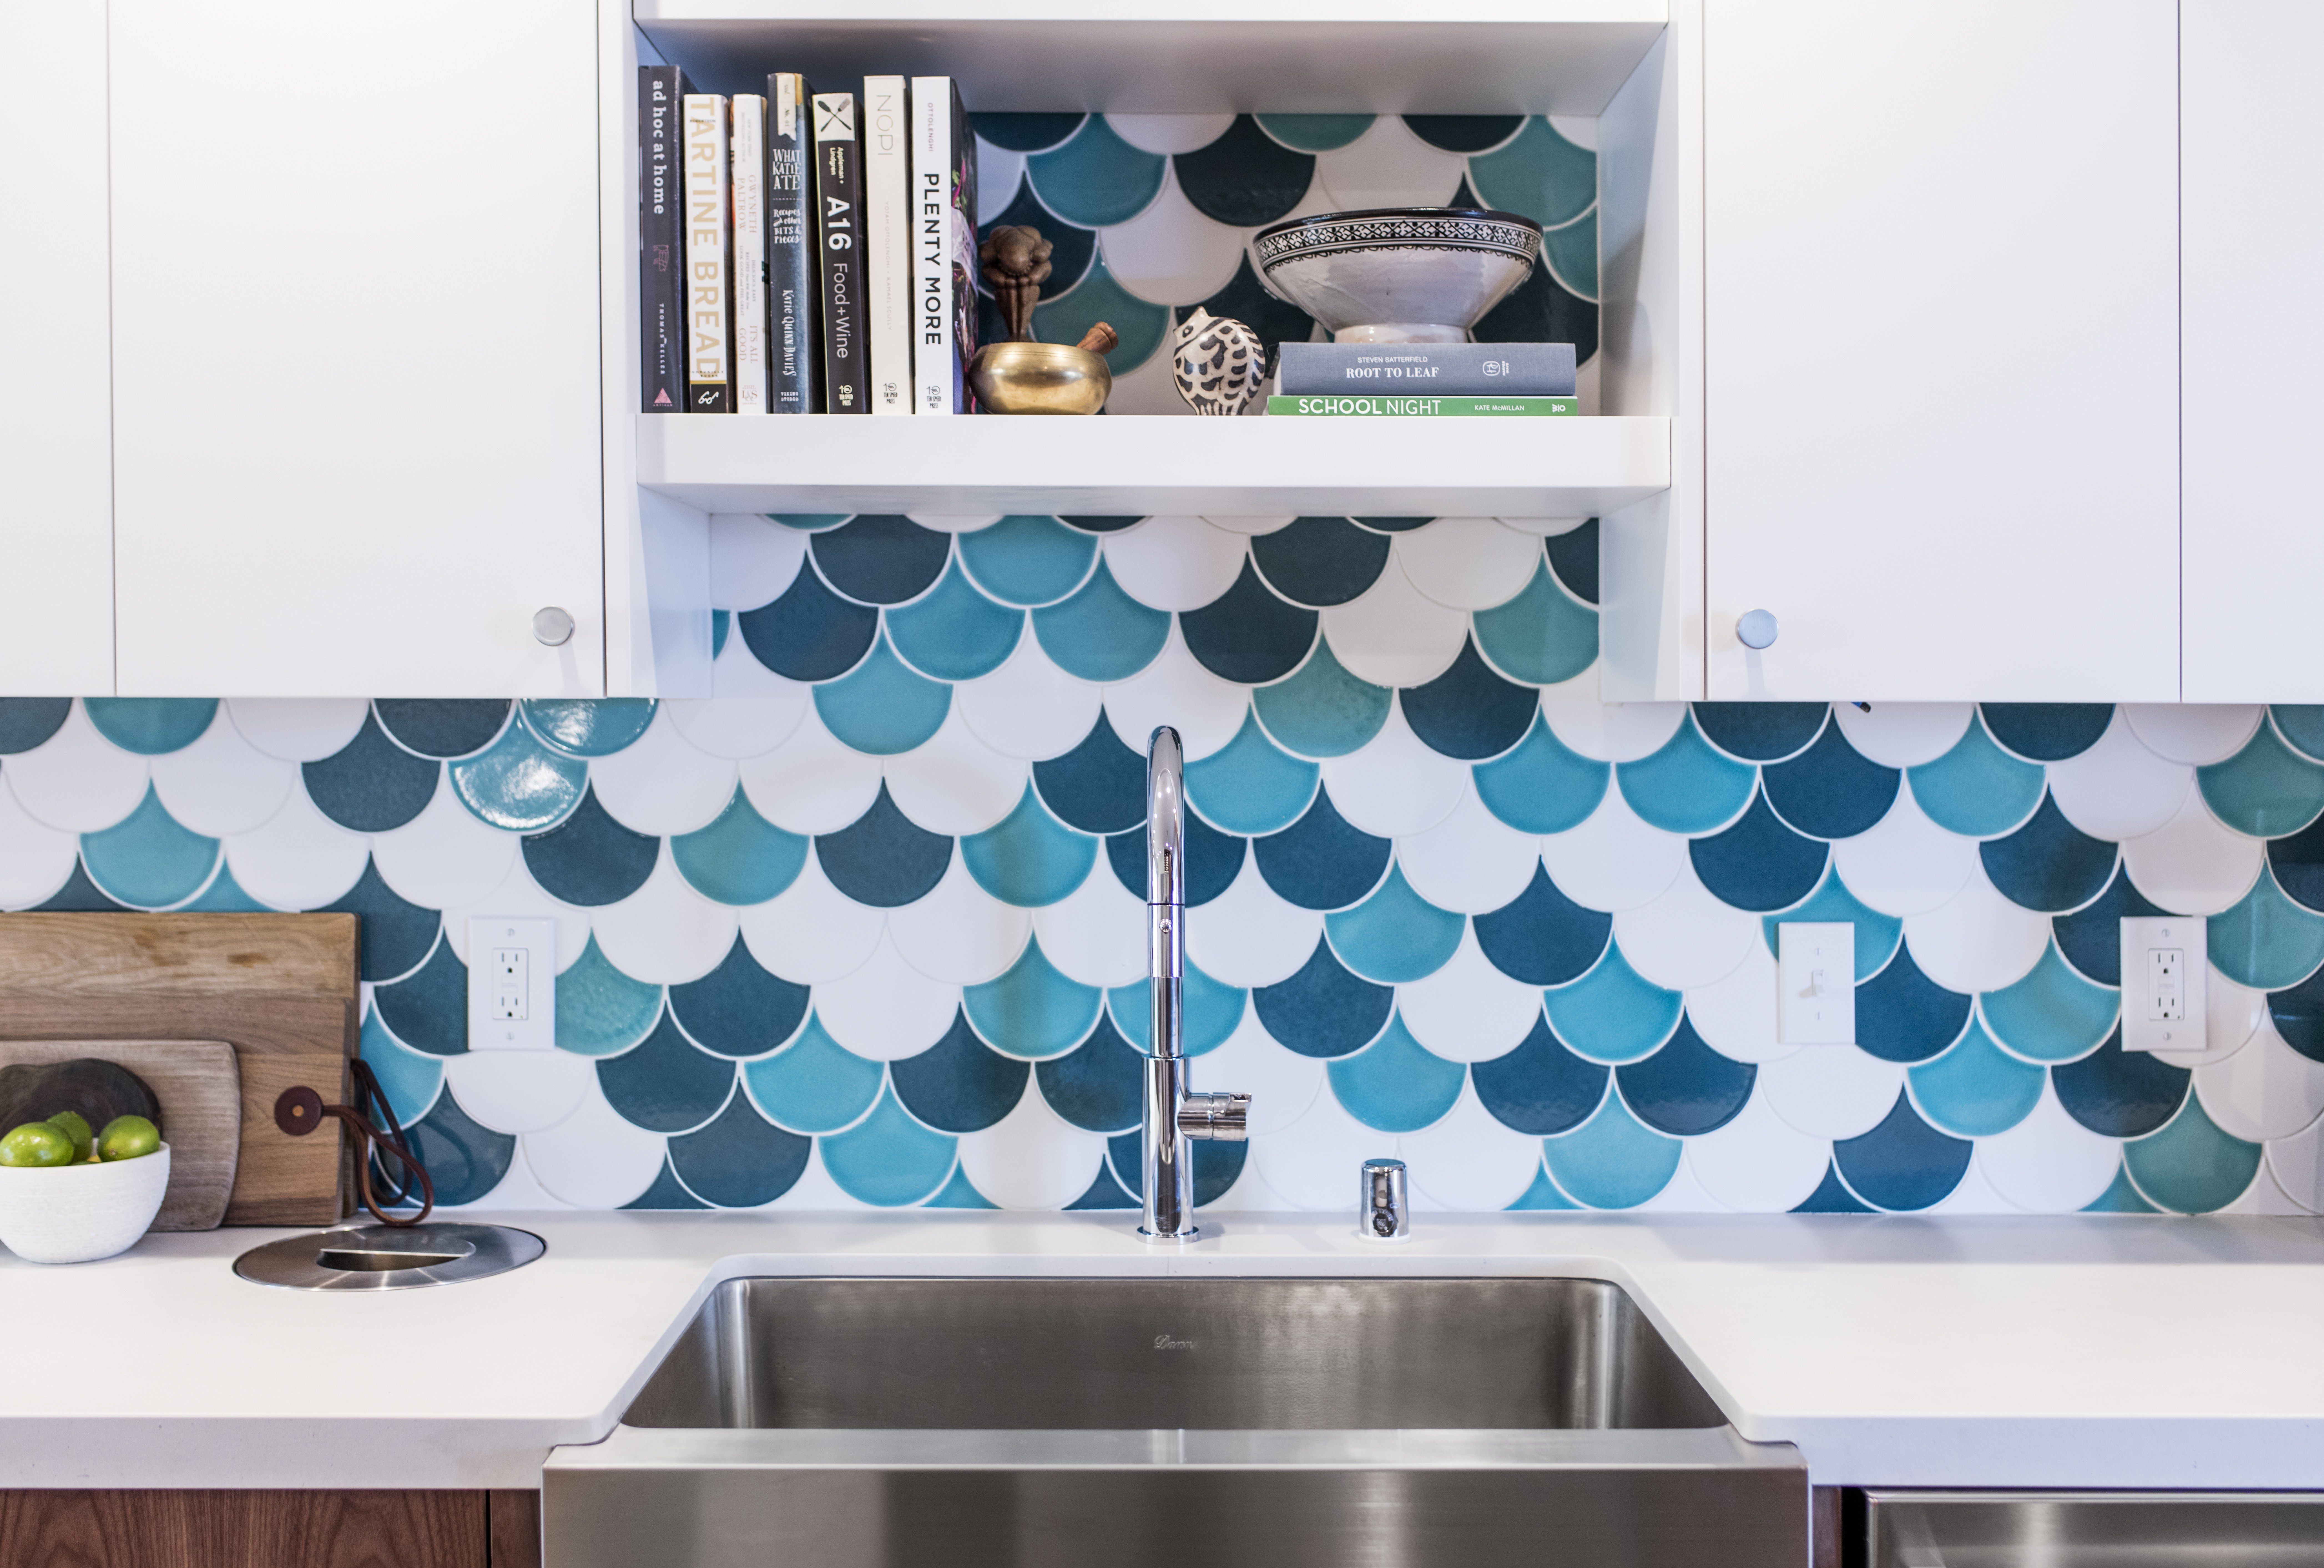 How to Grout Tile: Tips for Tile Floors   Grout, Remodeling ideas ...